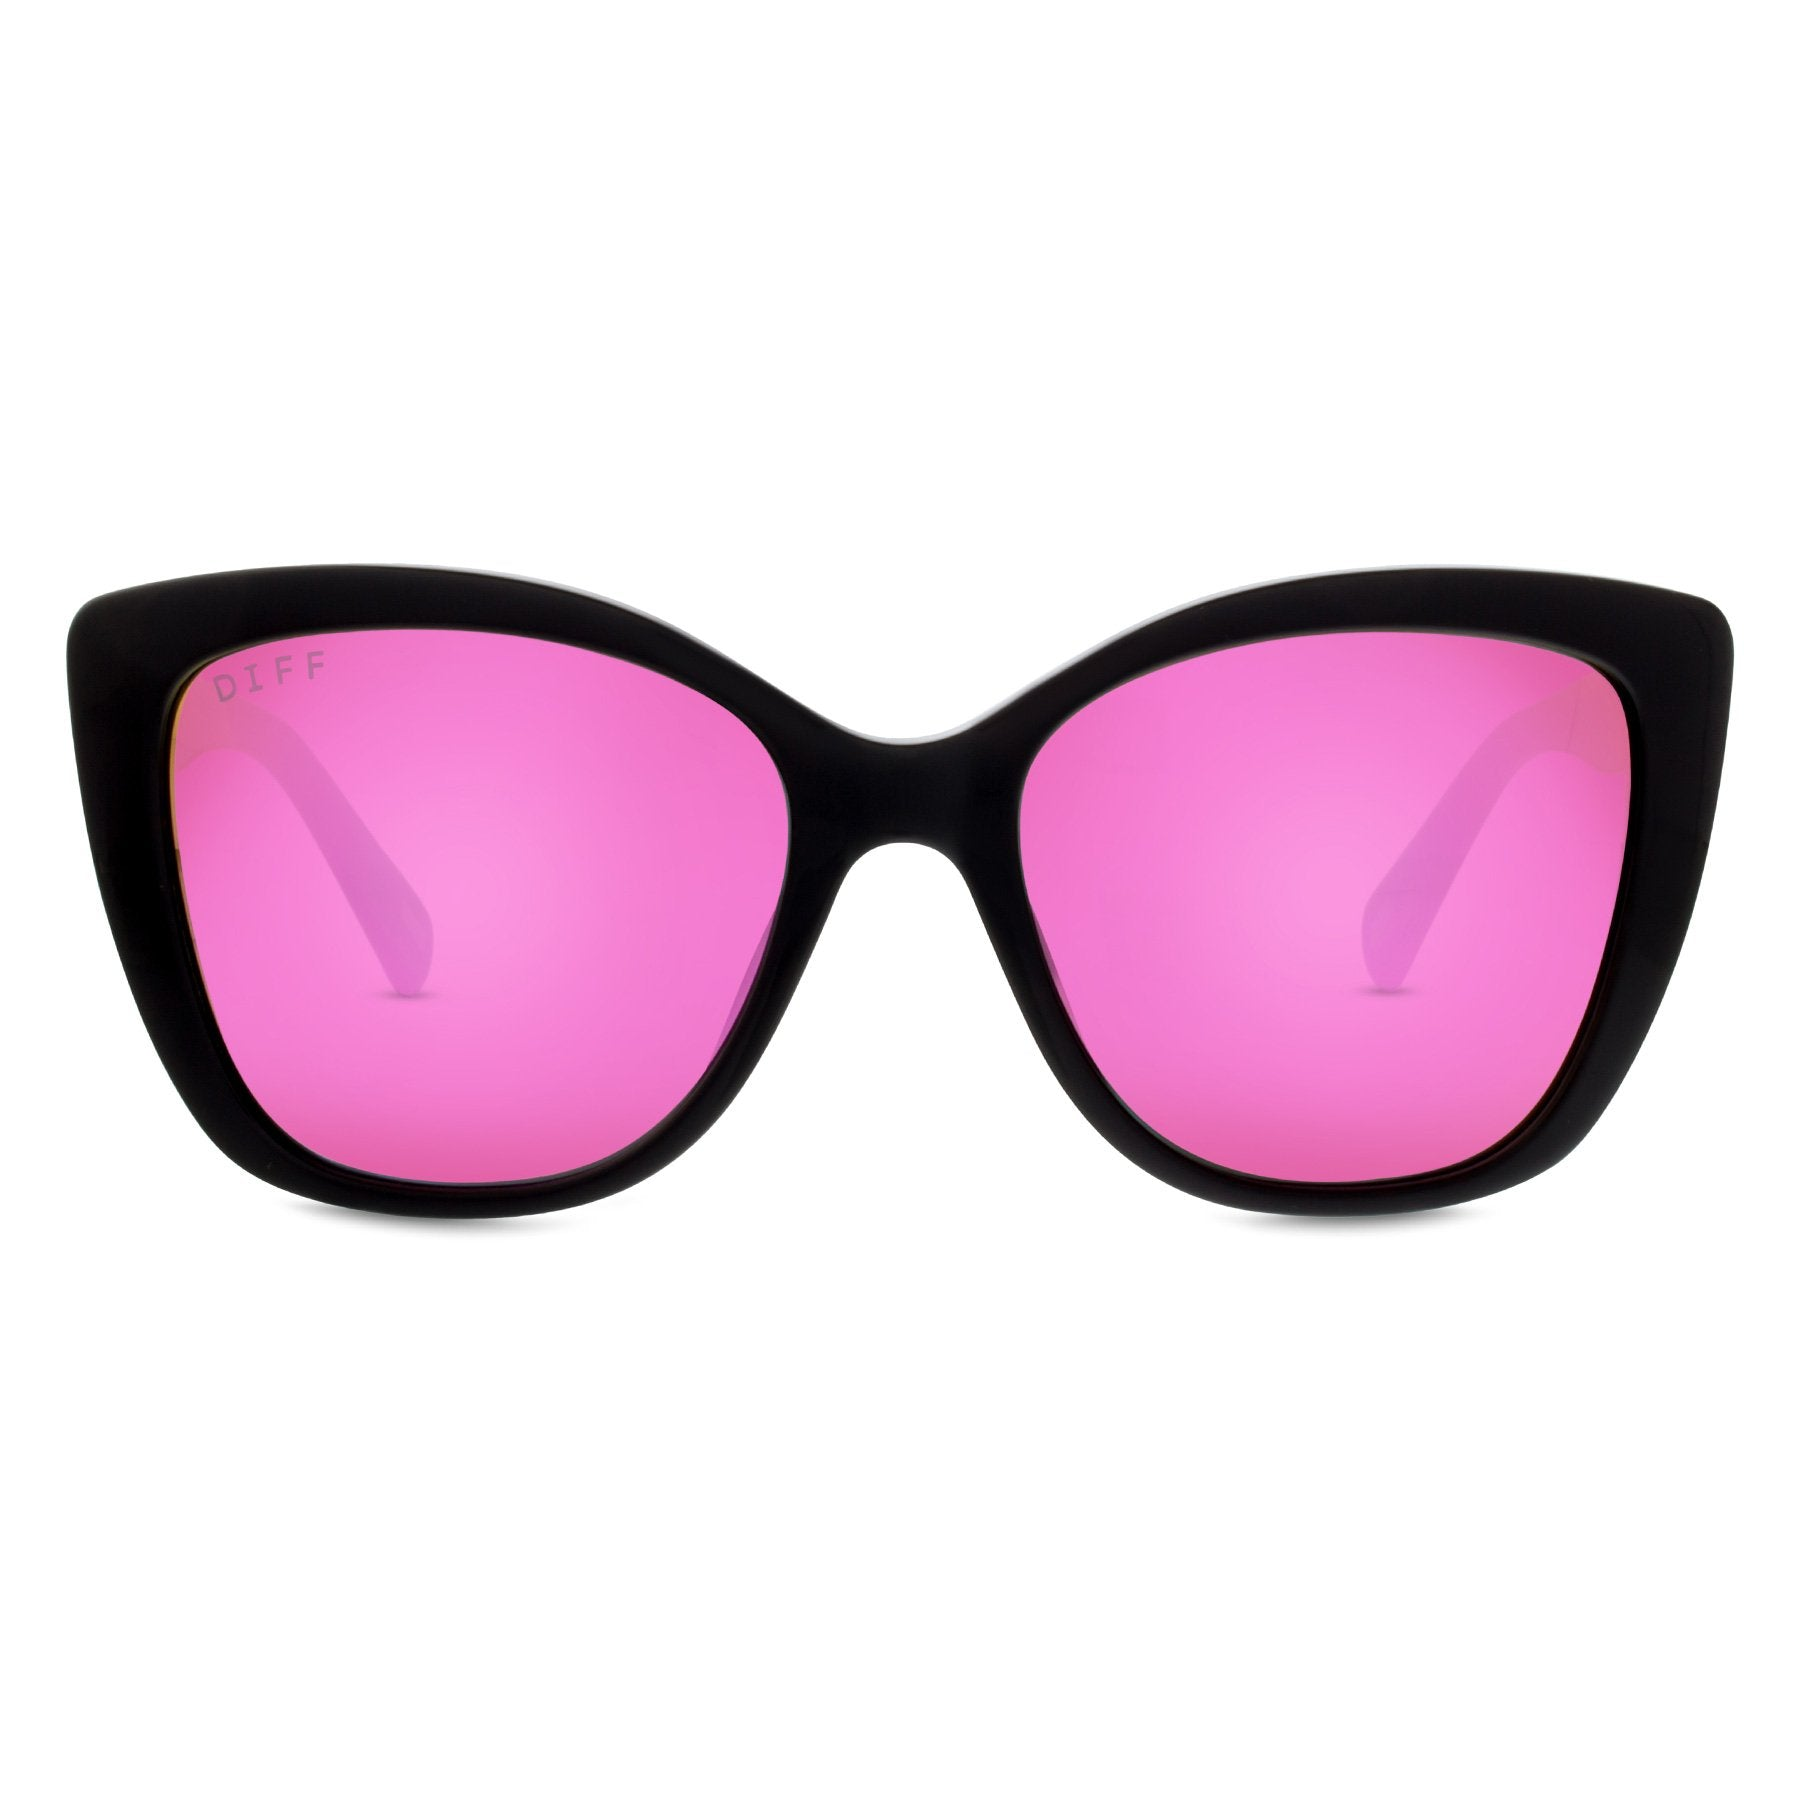 Oversized cat eye sunglasses ruby diff eyewear black frames pink lenses